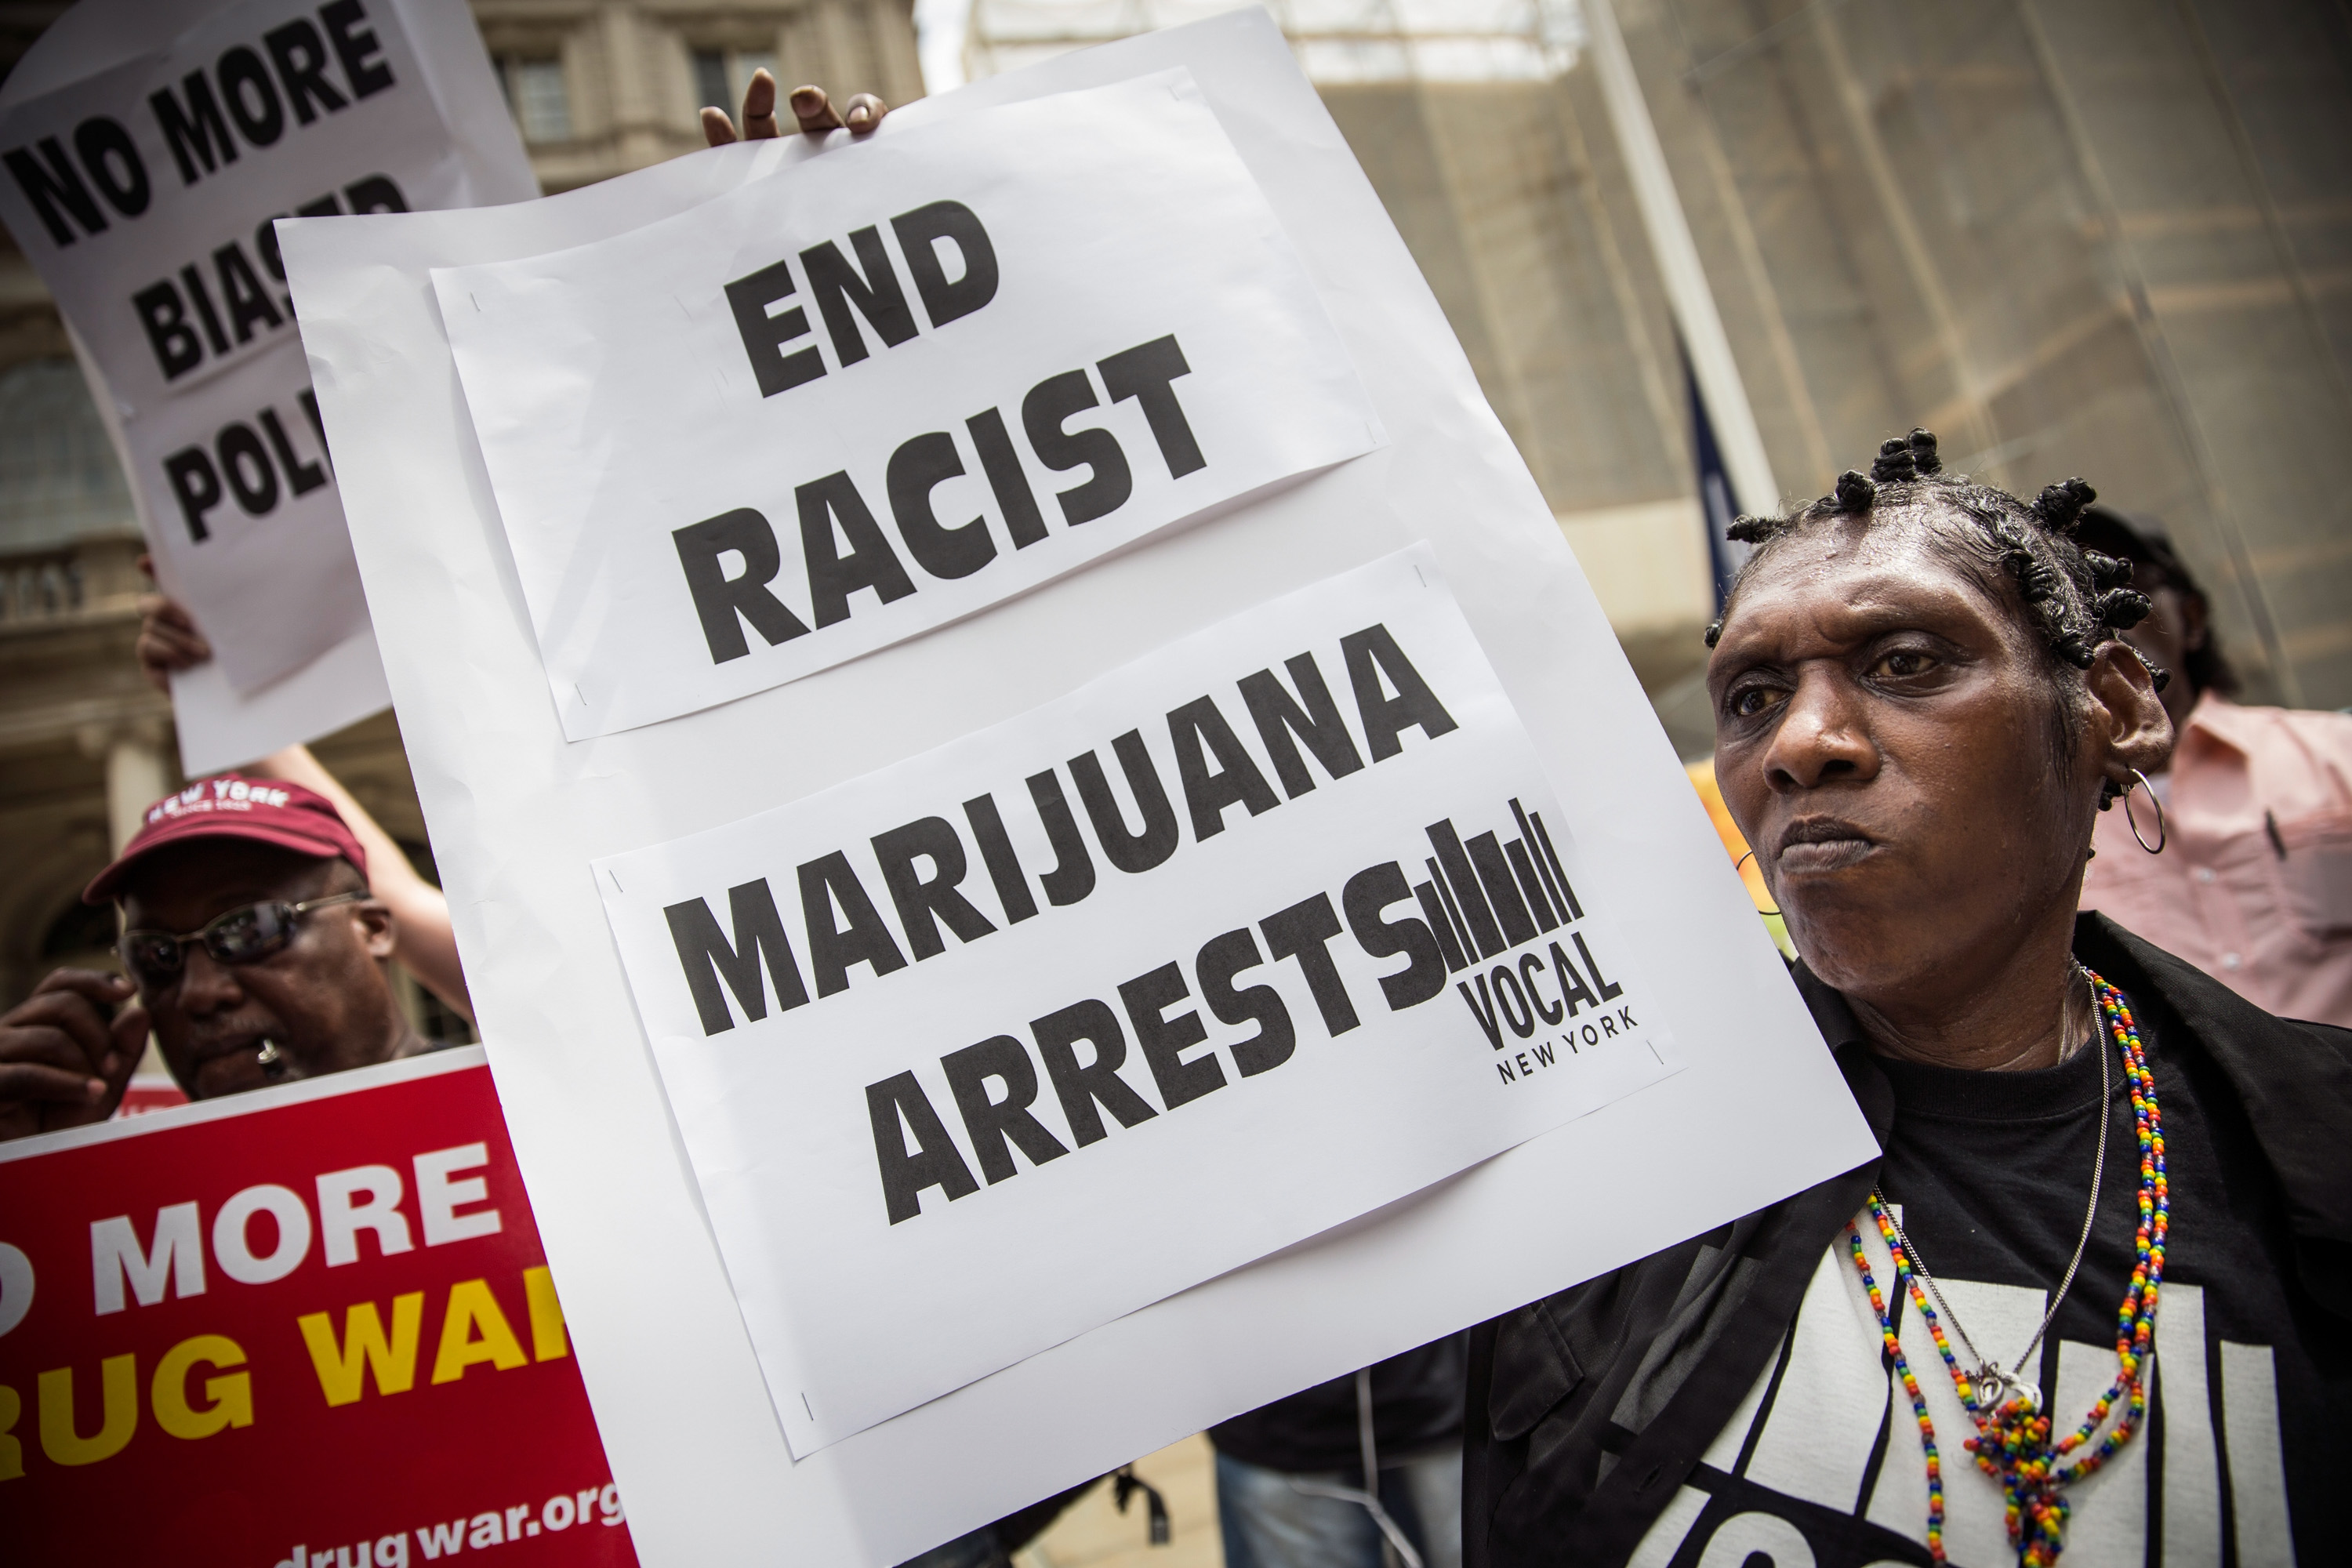 A protester calls for an end to the war on marijuana.